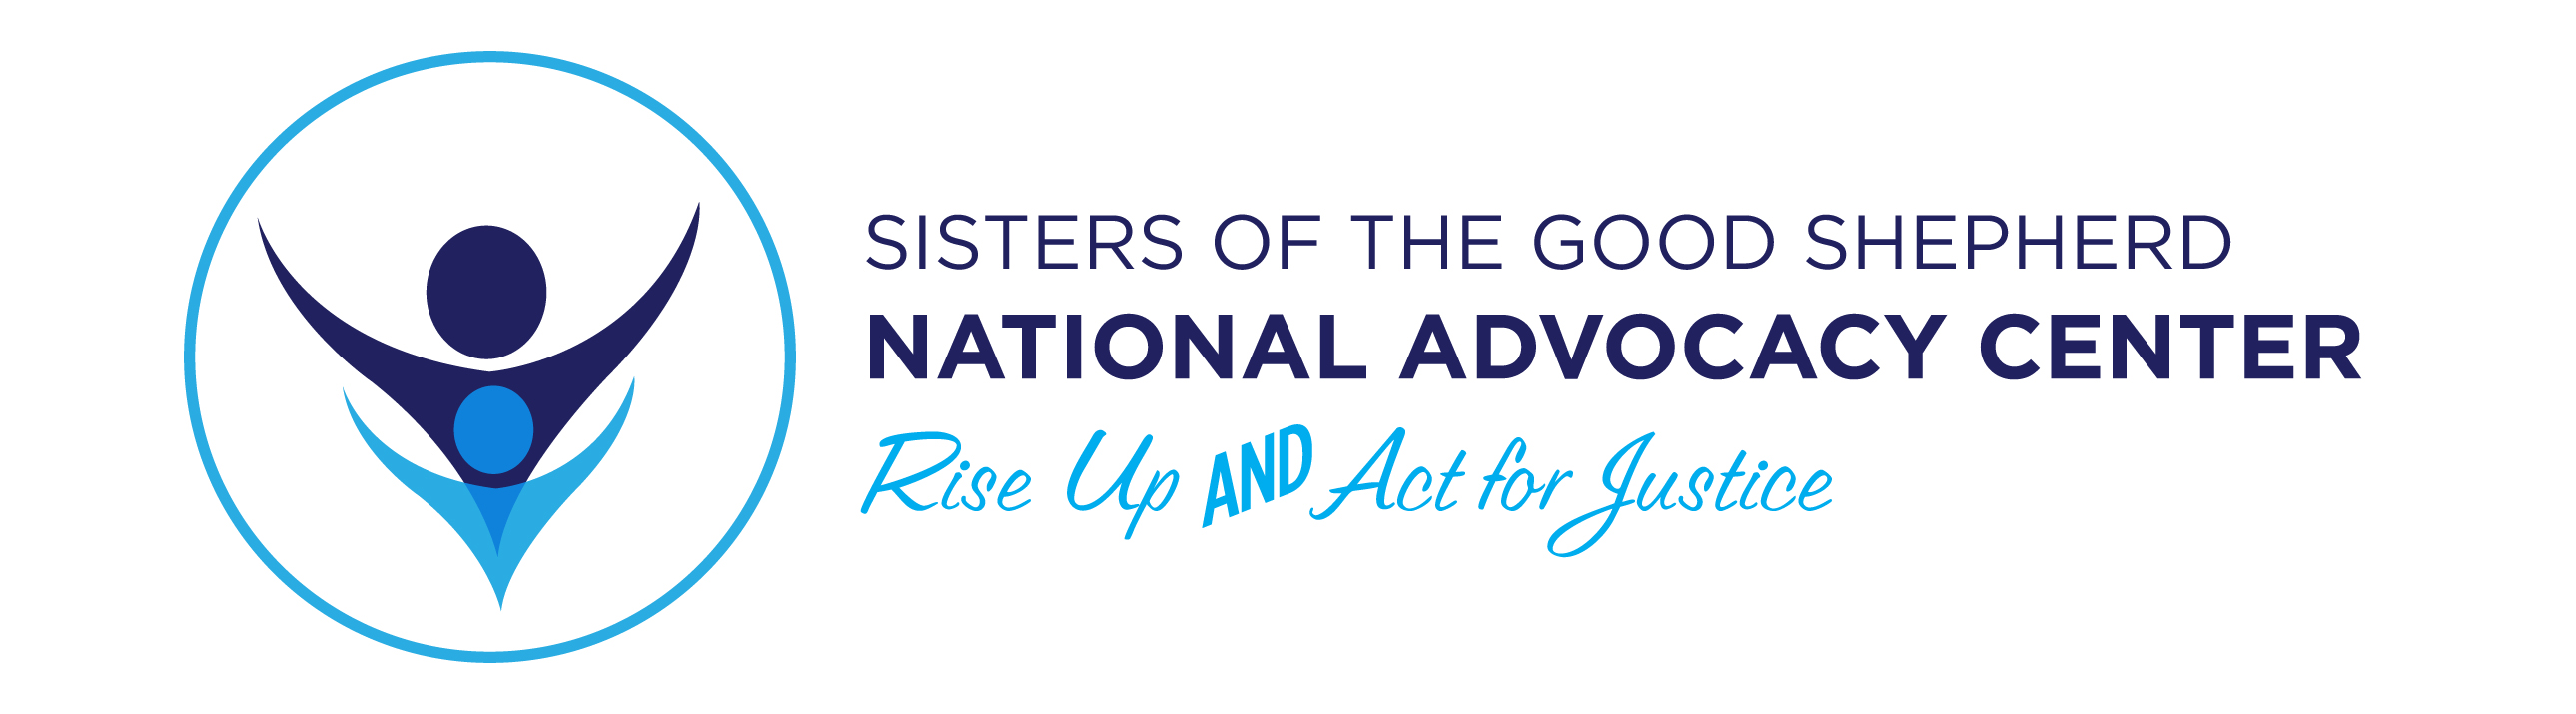 National Advocacy Center of the Sisters of the Good Shepherd